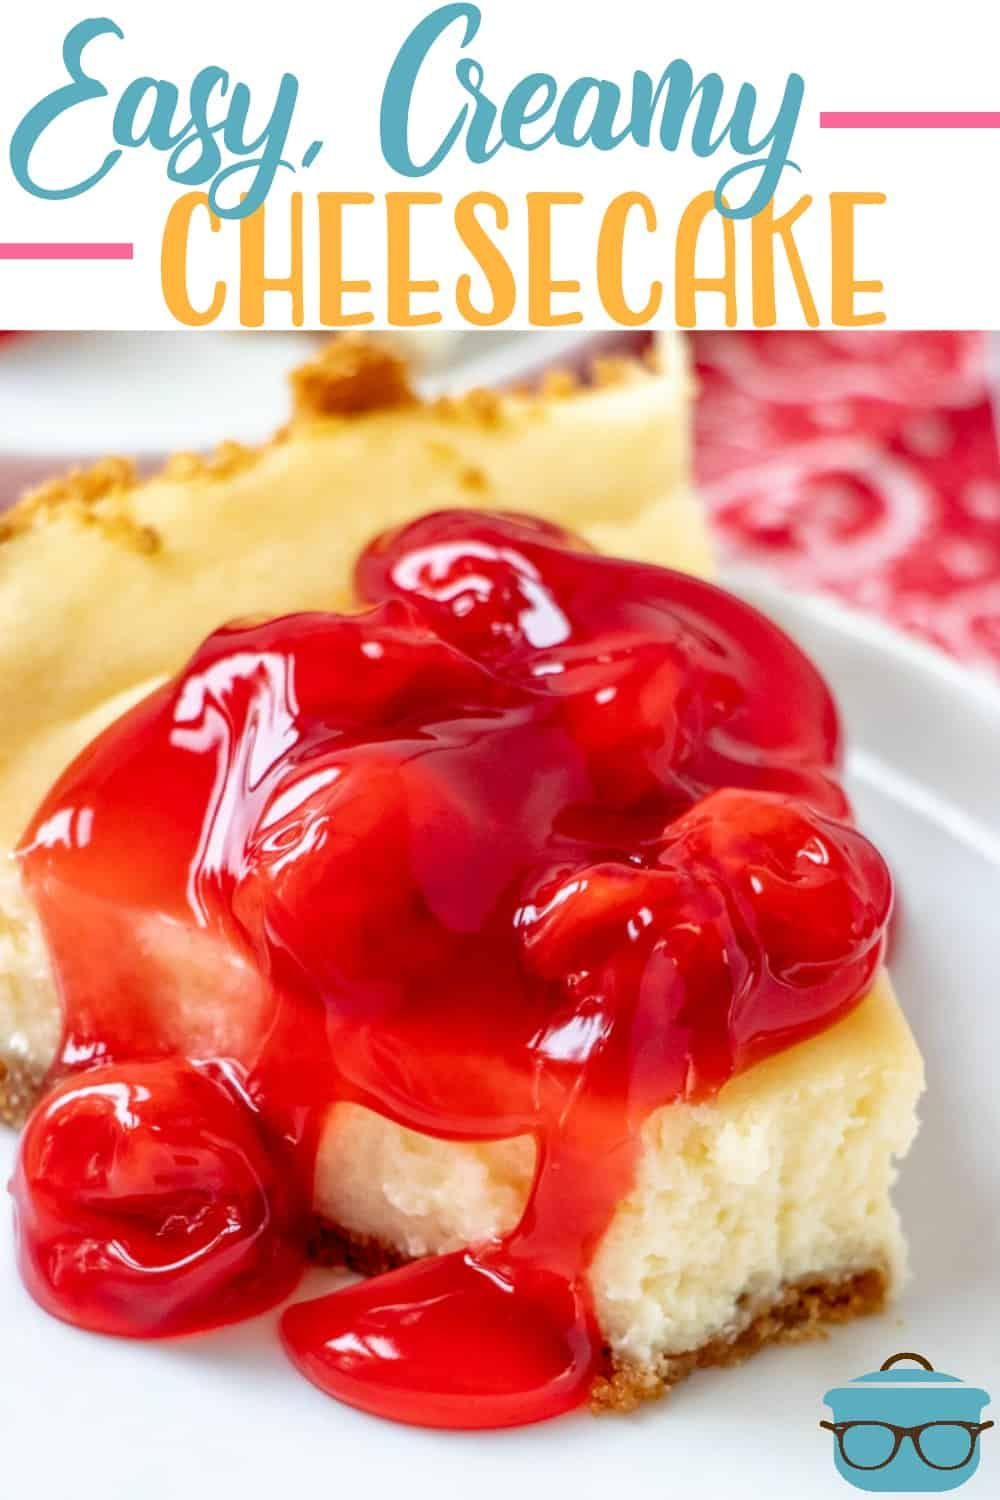 Easy and Creamy Cheesecake EASY AND CREAMY CHEESECAKE (+Video) - dessert